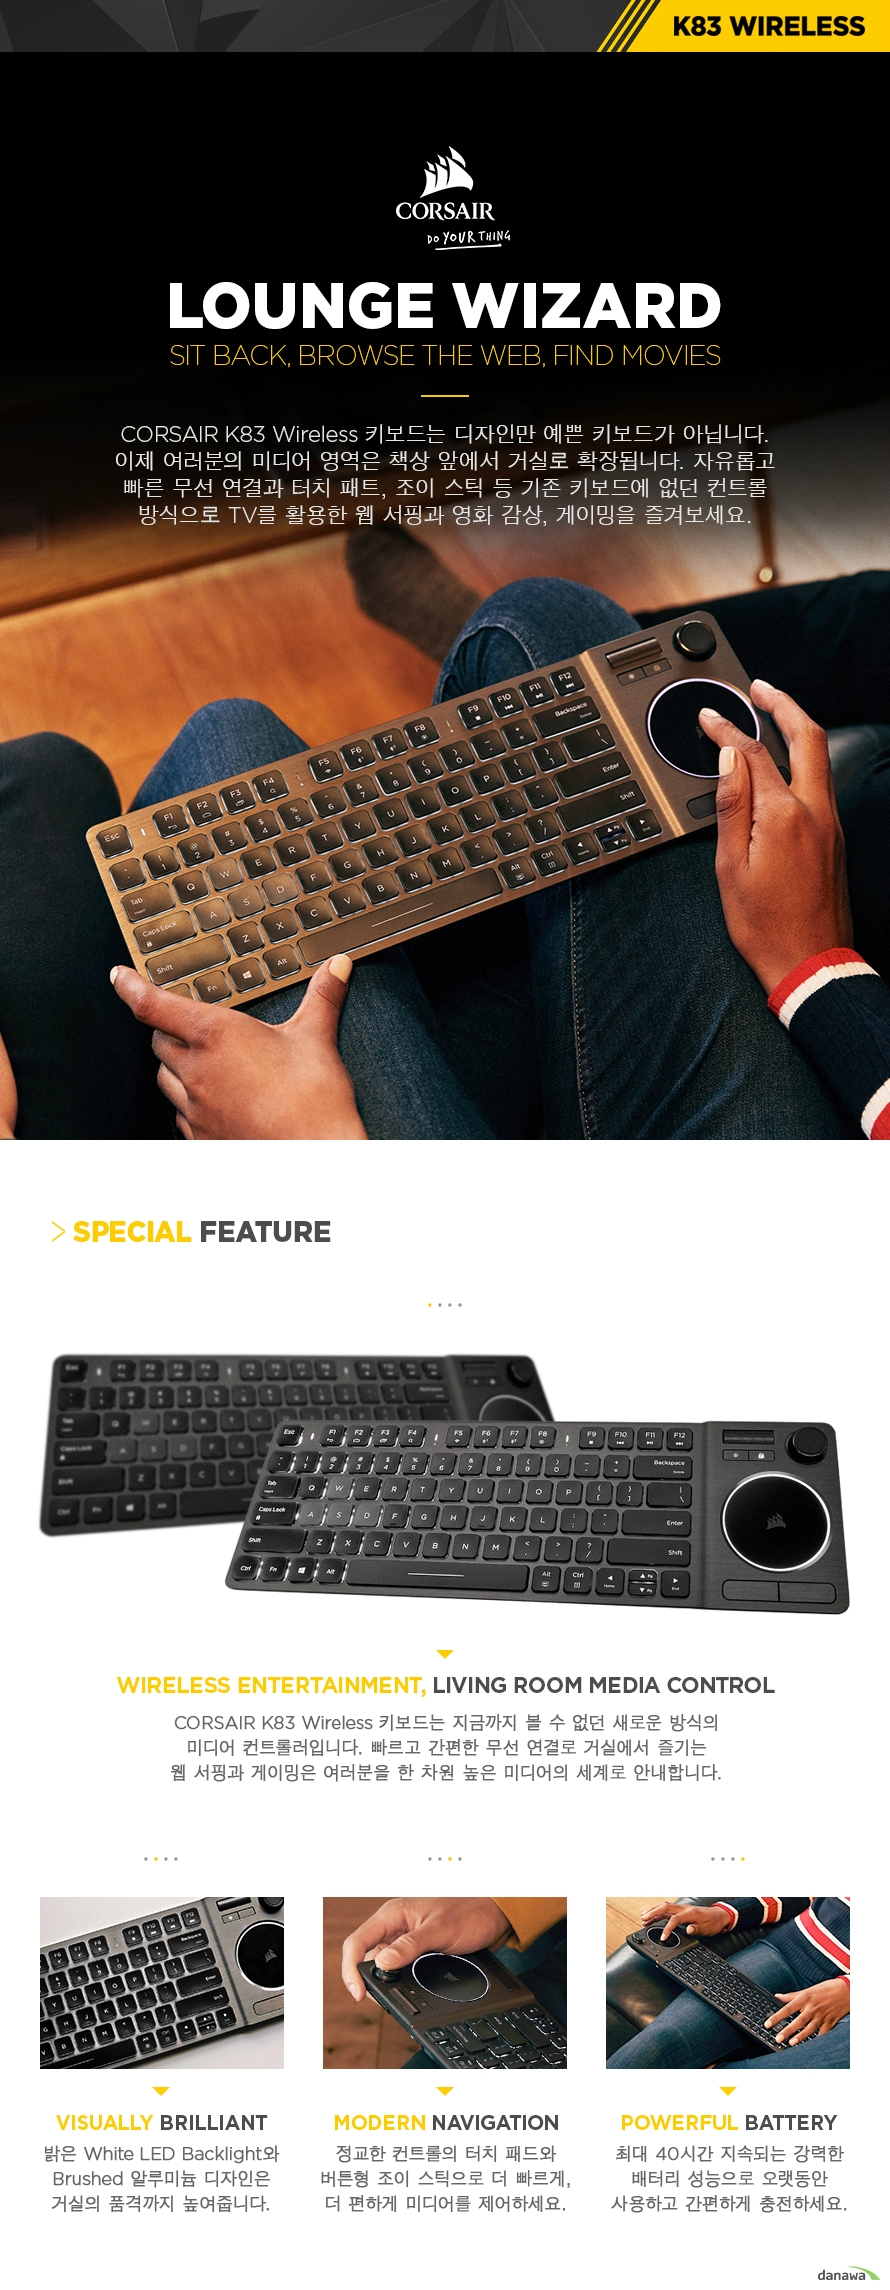 ca3c8ac4593 CORSAIR K83 Wireless Entertainment Keyboard 종합정보 행복쇼핑의 시작 ...